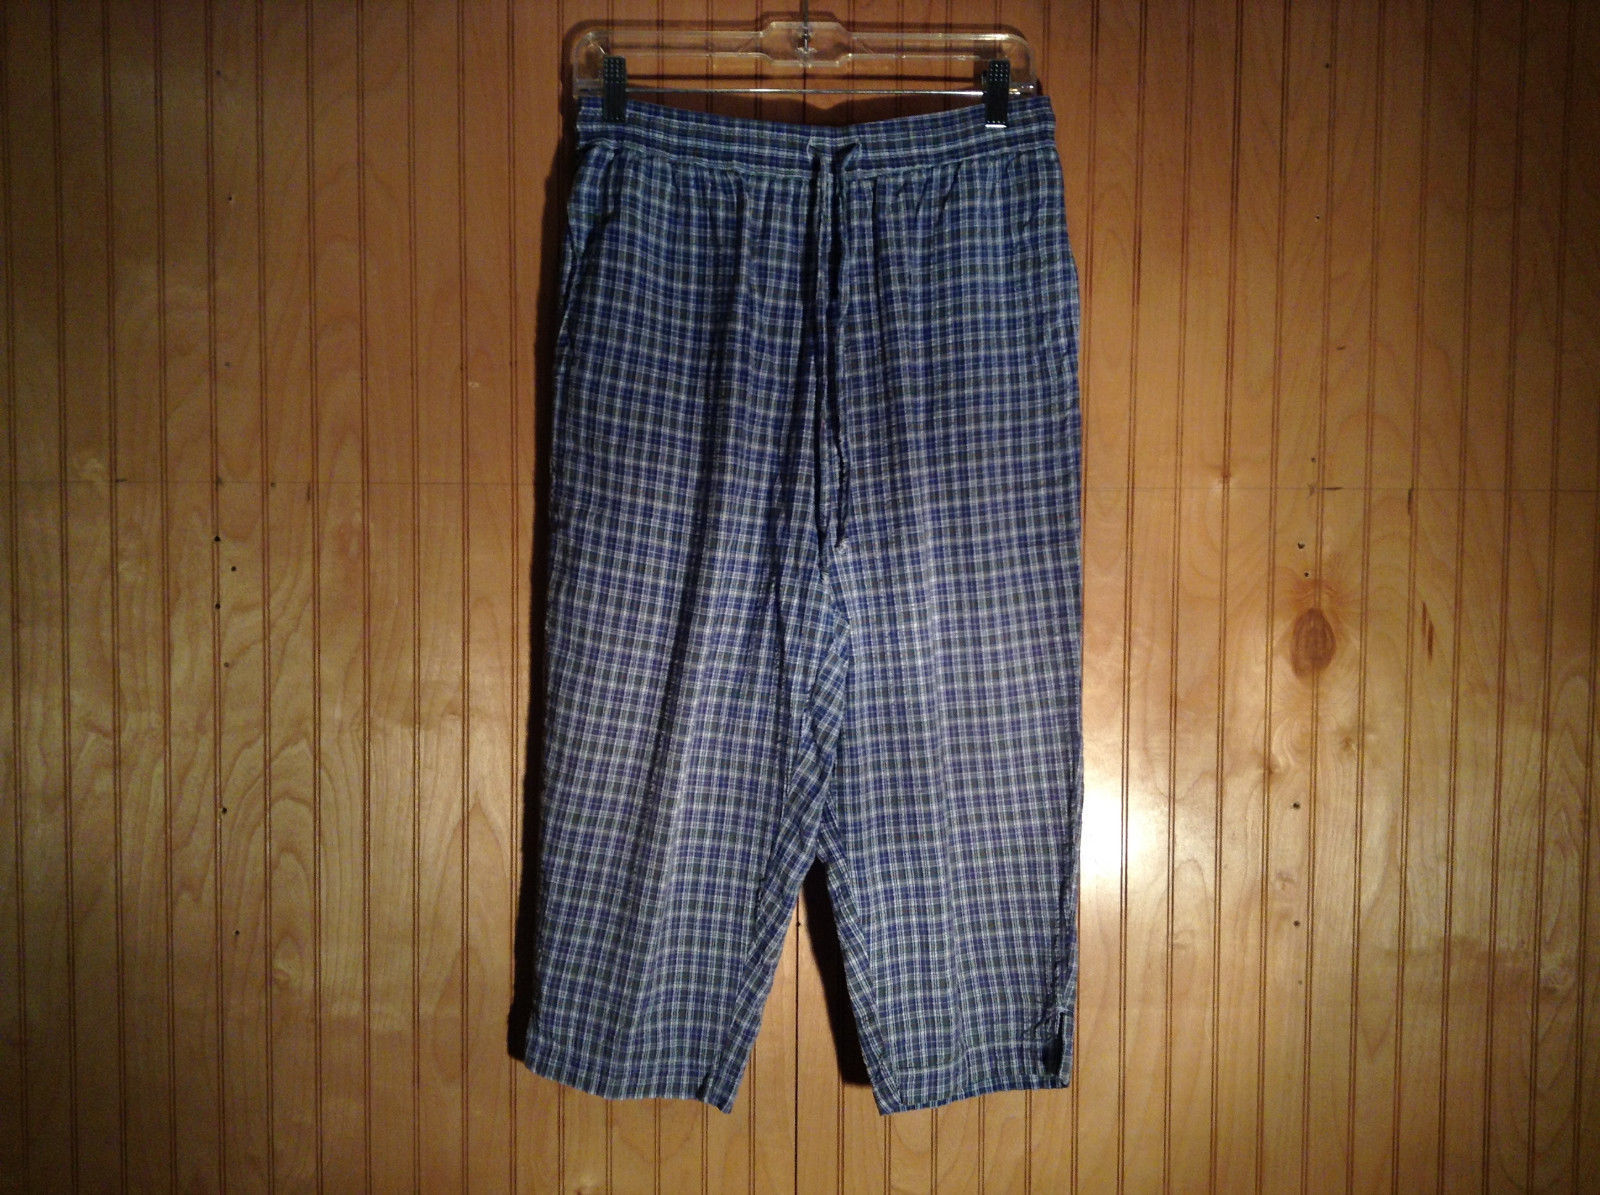 Blue Plaid Capris 100 Percent Cotton Pants by Lauren Brooke Size Large